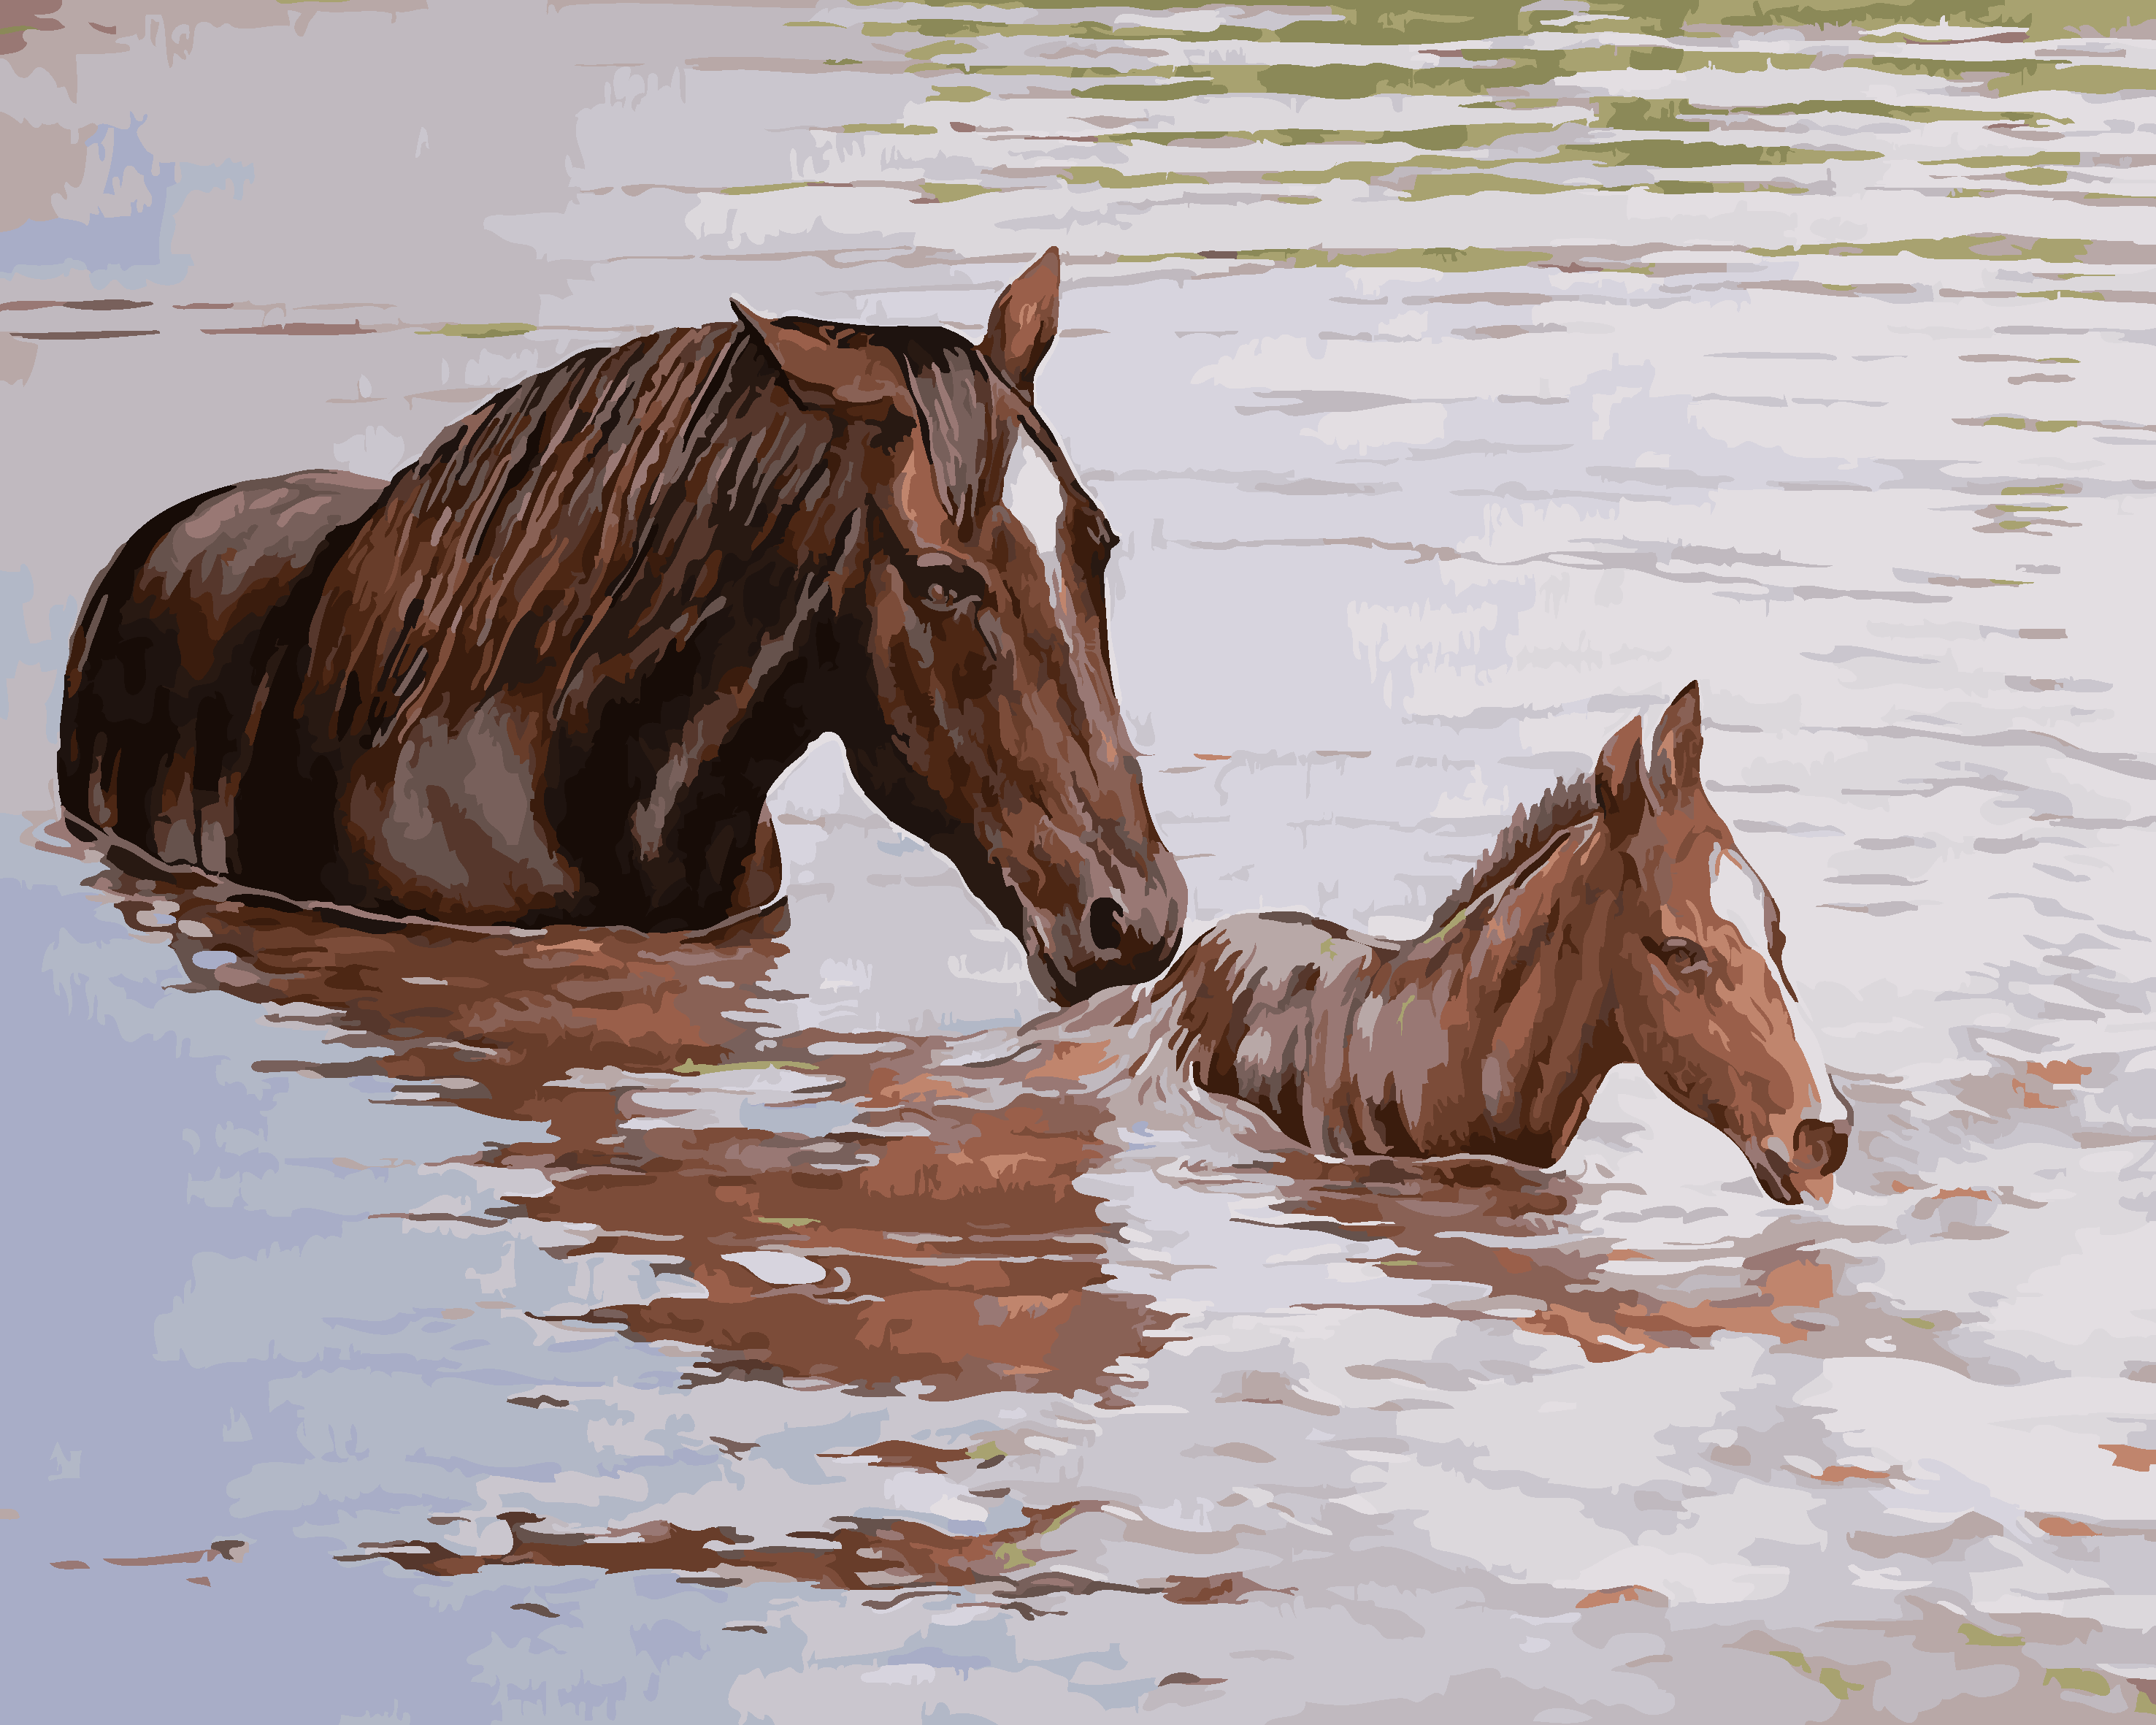 New NEW Oil Painting Horses crossing the river DIY Home Decor landscape Crafts Framed By Numbers Picture Canvas Painting